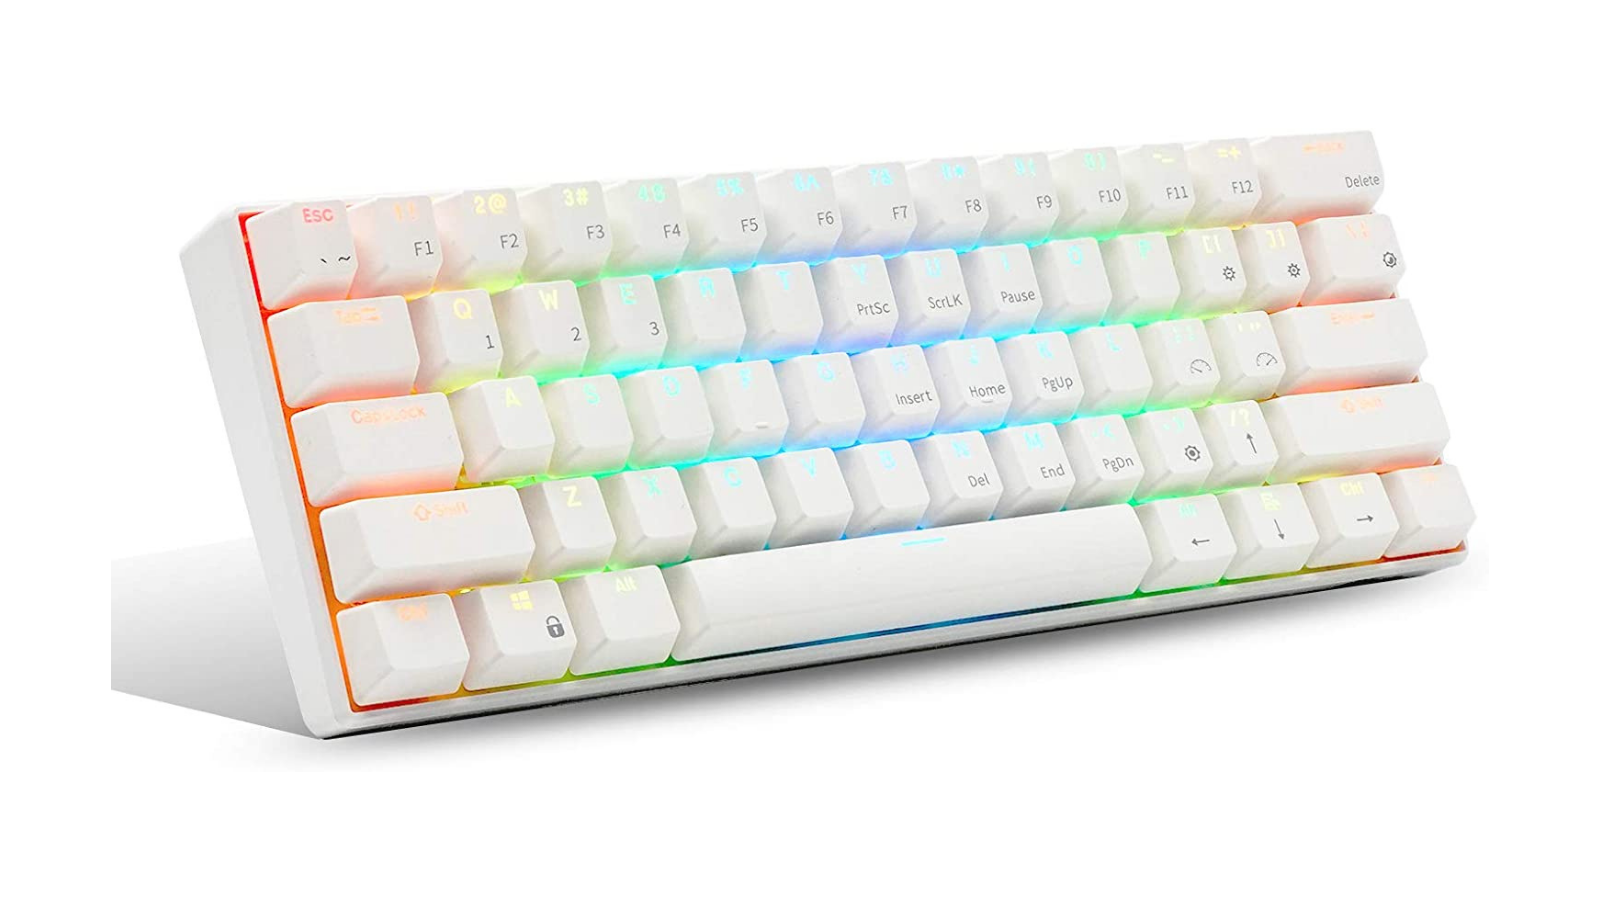 RK ROYAL KLUDGE RK61 RGB Wireless/Wired 60% Compact Mechanical Keyboard